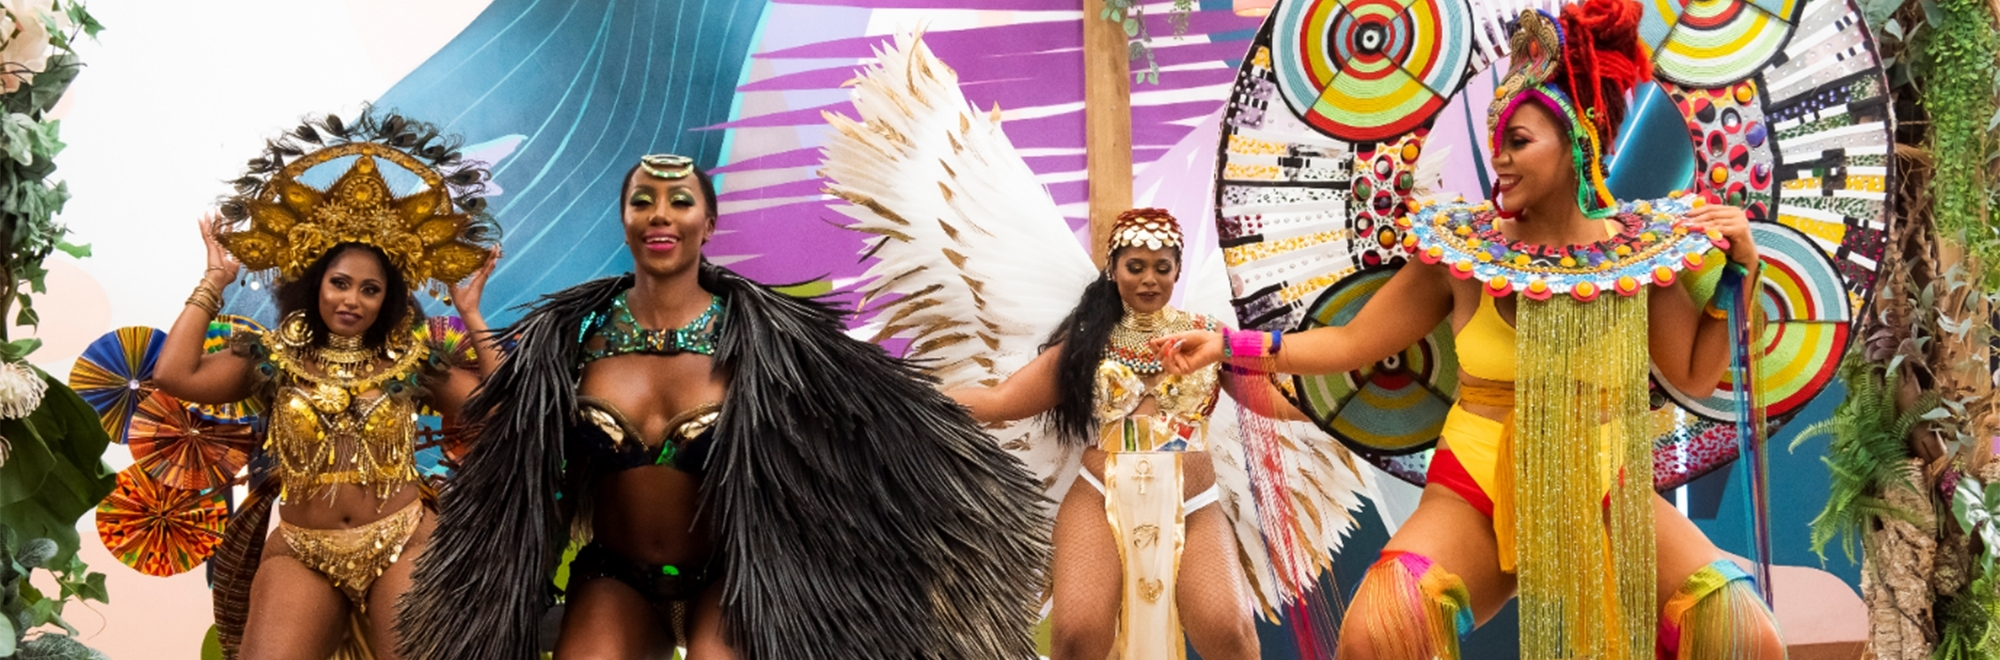 Samsung partner with Notting Hill Carnival to create a virtual 'Colours of Carnival' 8K experience